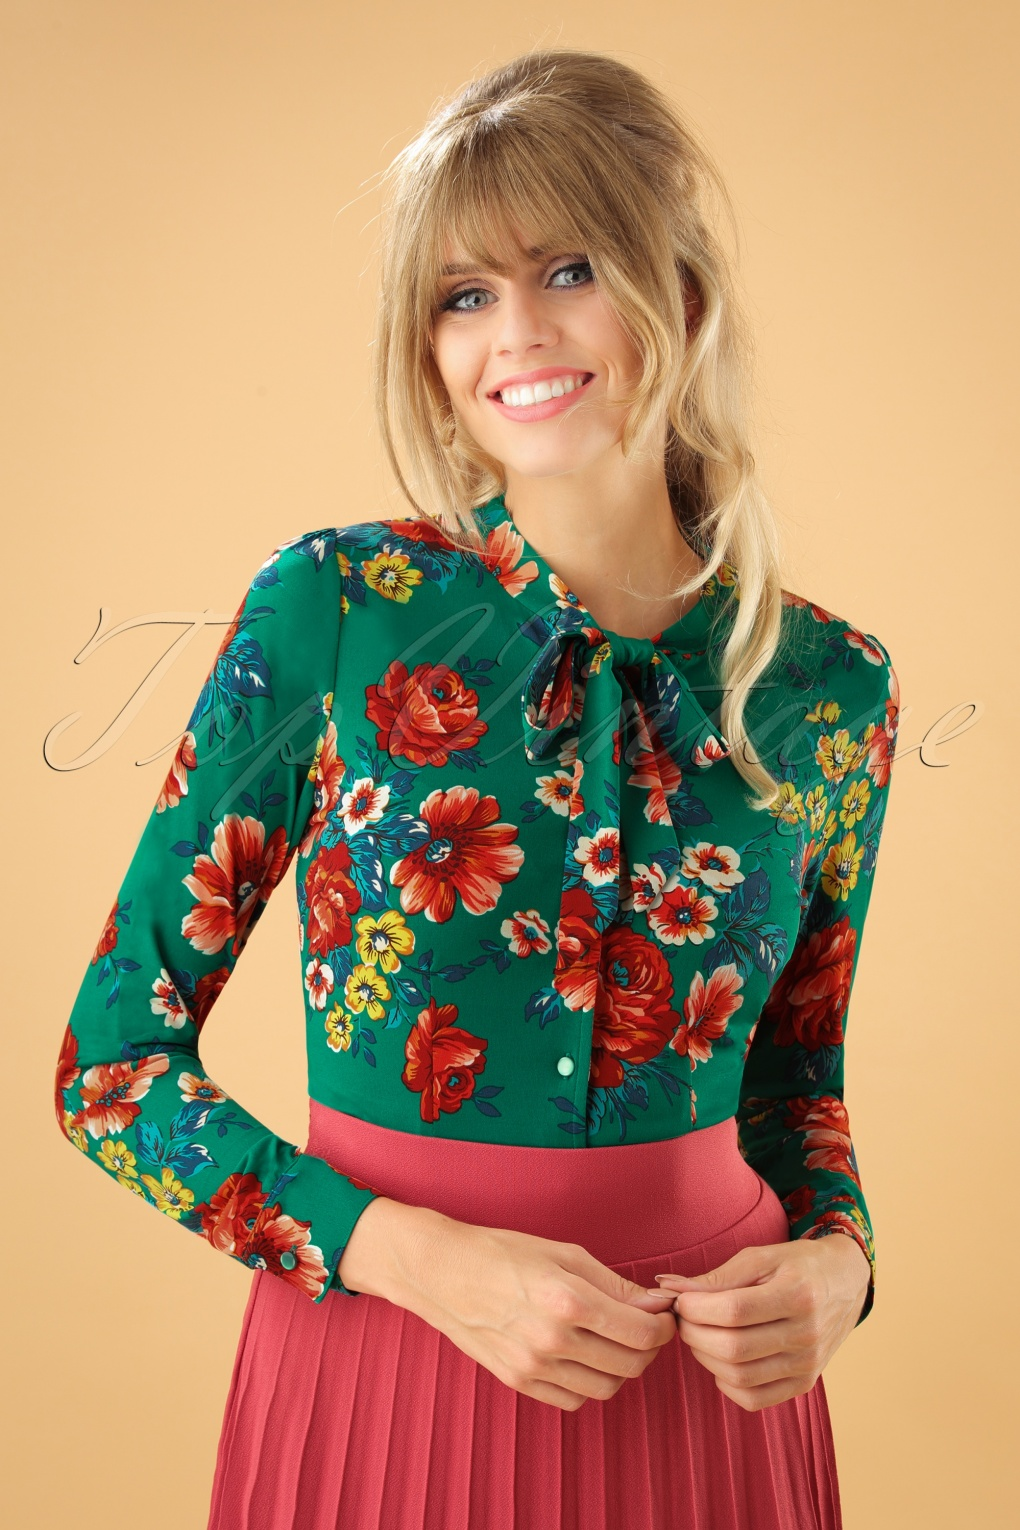 Women's 70s Shirts, Blouses, Hippie Tops 70s Olivia Melrose Bow Blouse in Fern Green £61.25 AT vintagedancer.com